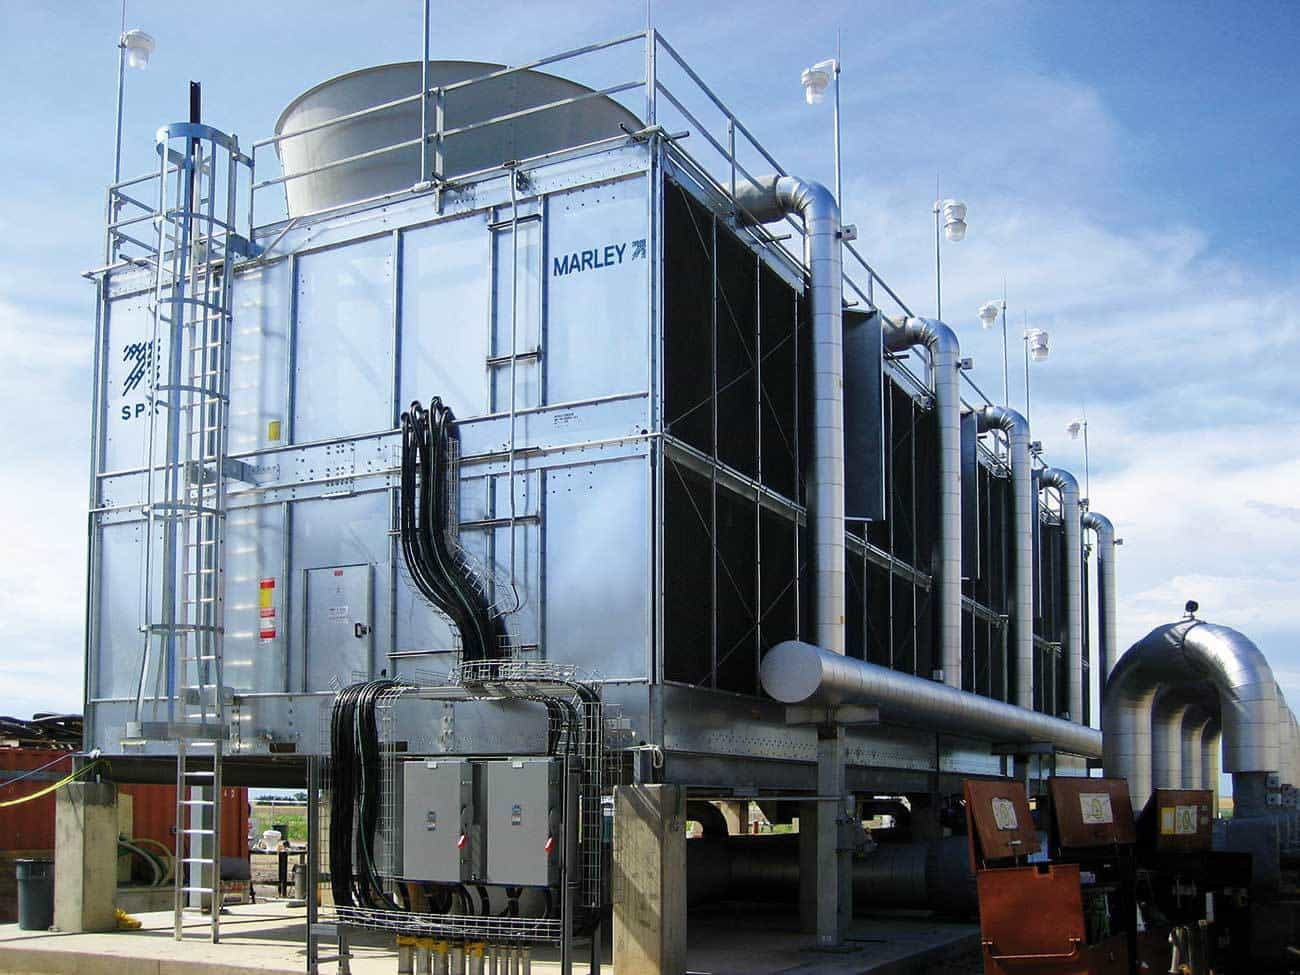 Cooling Towers And The Need For Loss Prevention